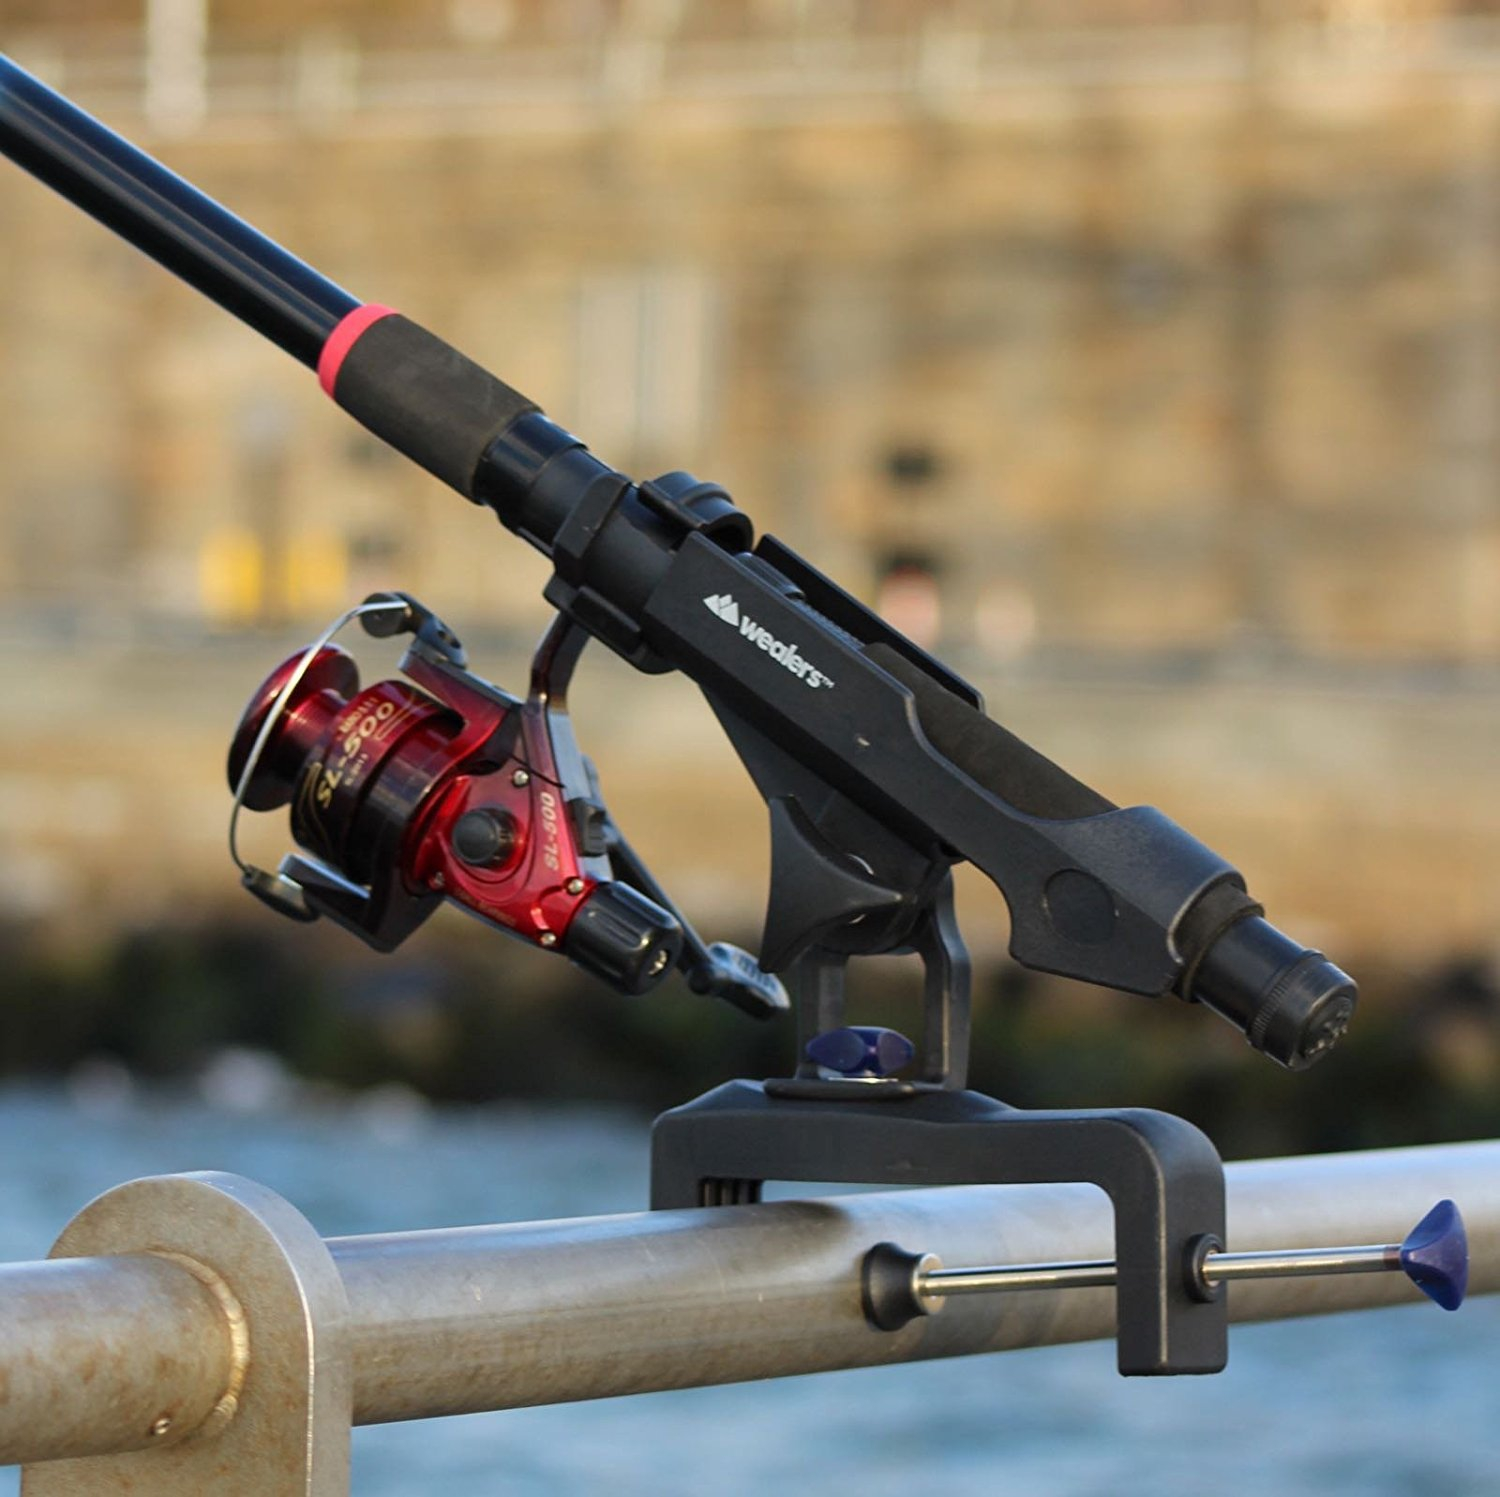 Wealers Fishing Boat Casting Rods Holder with Large Clamp Opening Adjustable 360 Degree Fishing Rod Racks Holder by